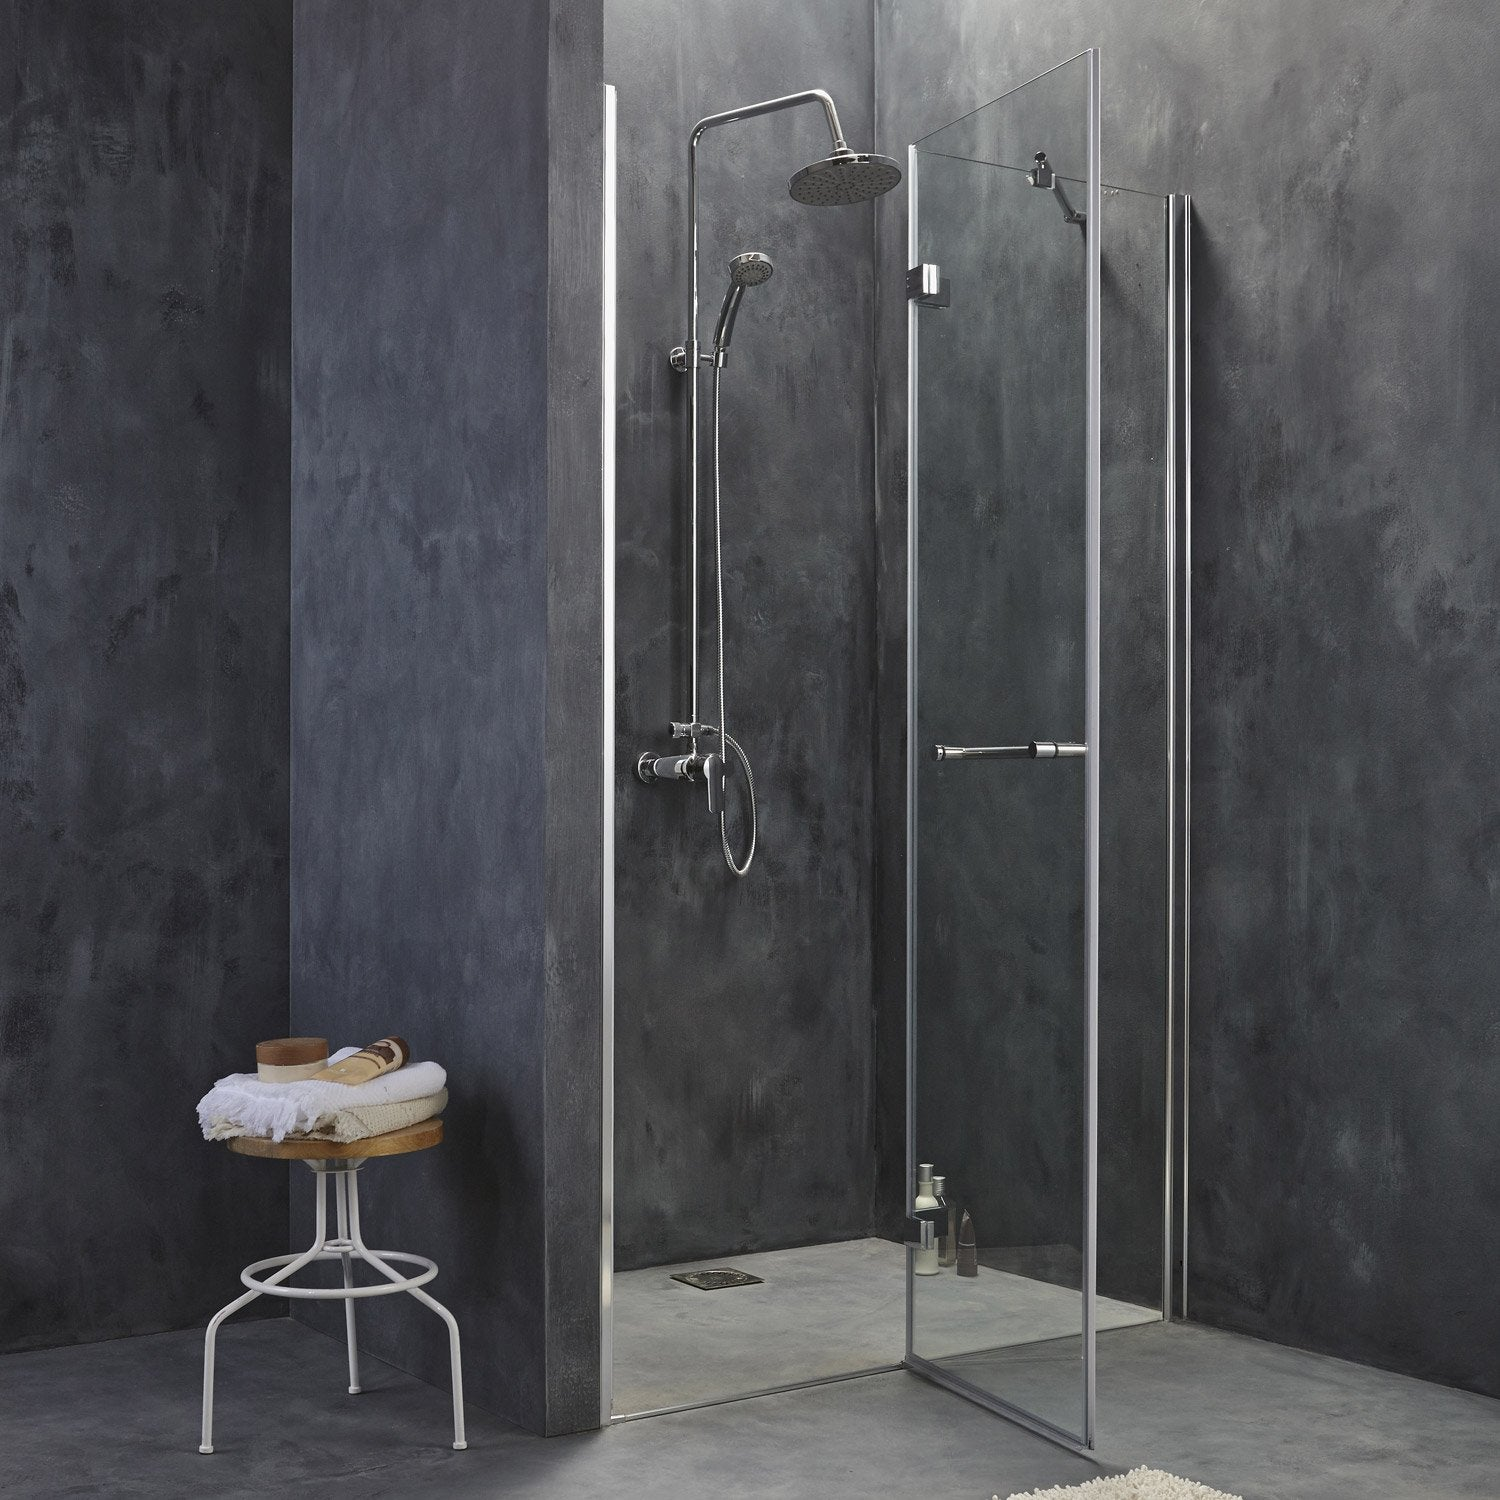 porte de douche pivotante 120 cm transparent open2 leroy merlin. Black Bedroom Furniture Sets. Home Design Ideas